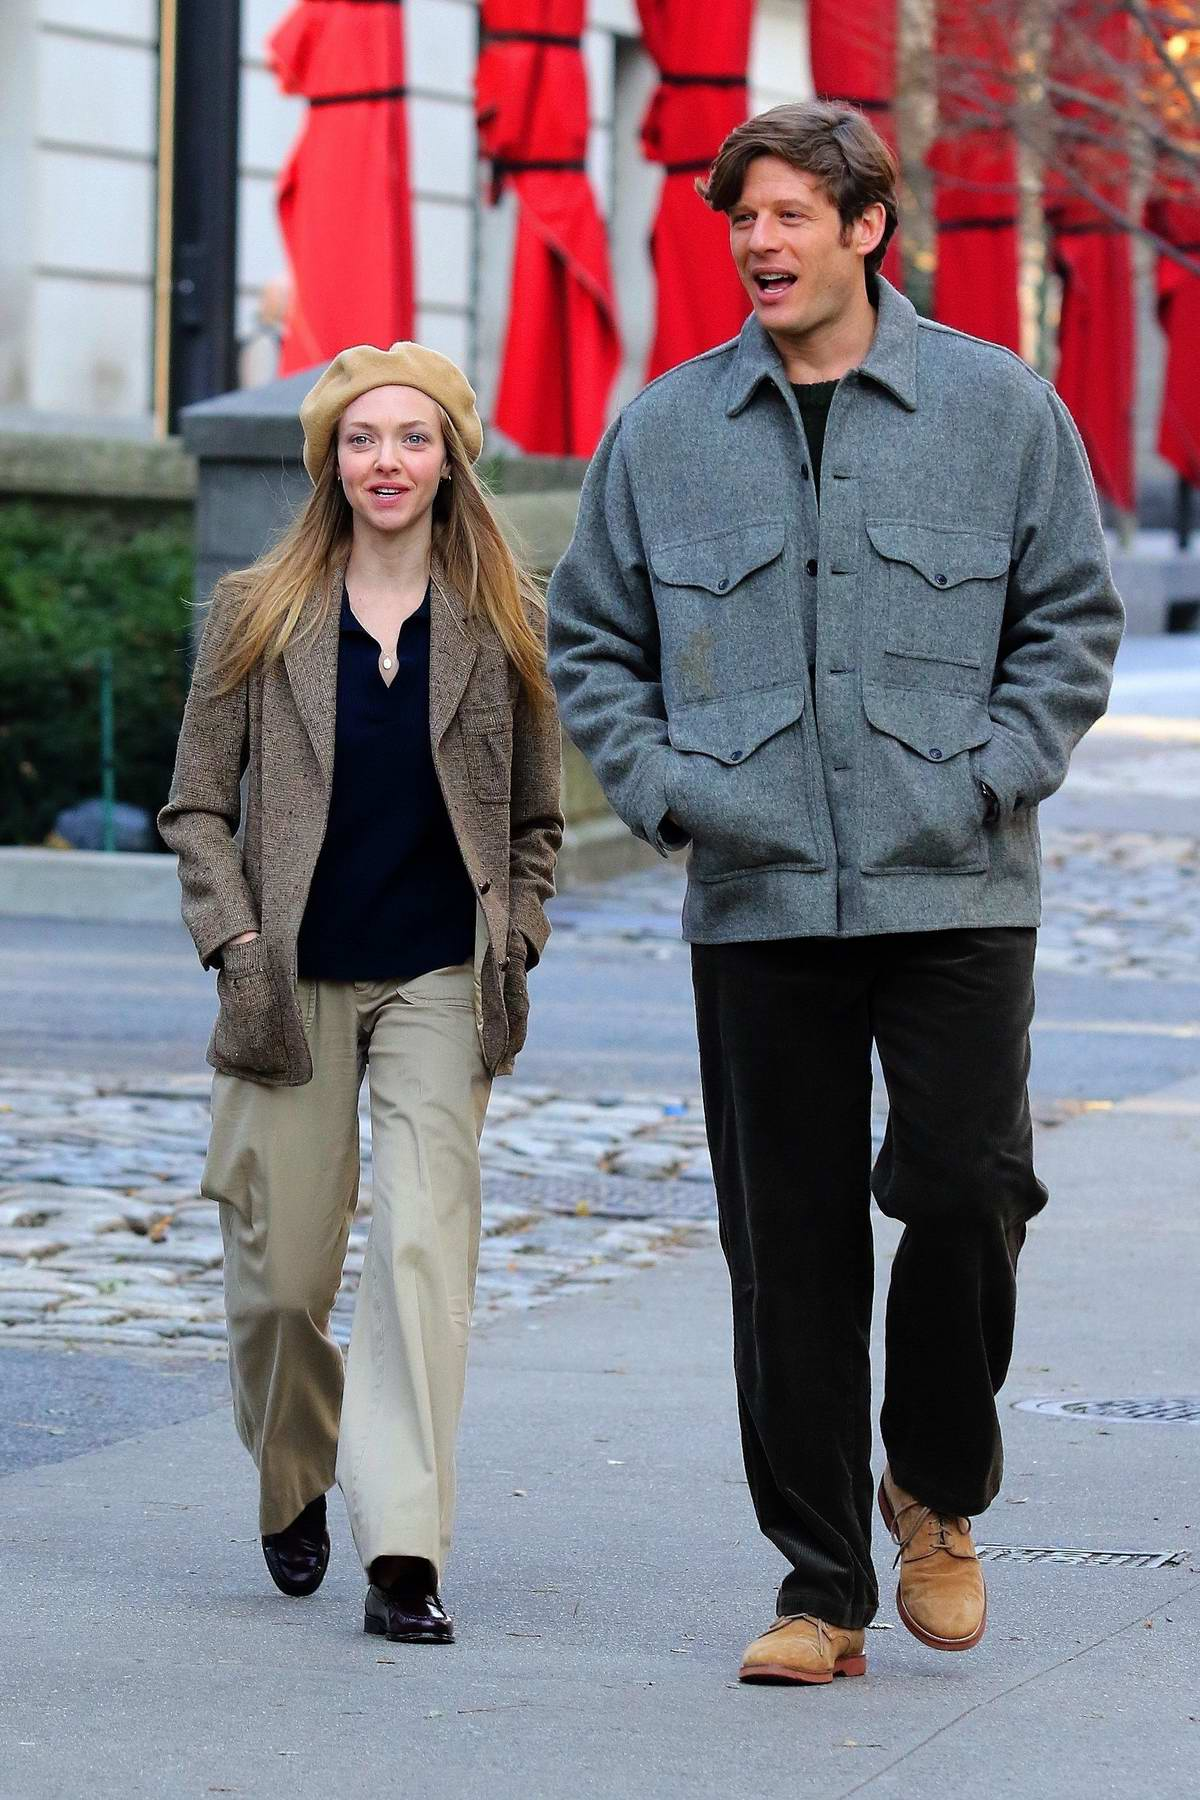 Amanda Seyfried and James Norton spotted while filming the 1970s thriller 'Things Heard and Seen' in New York City